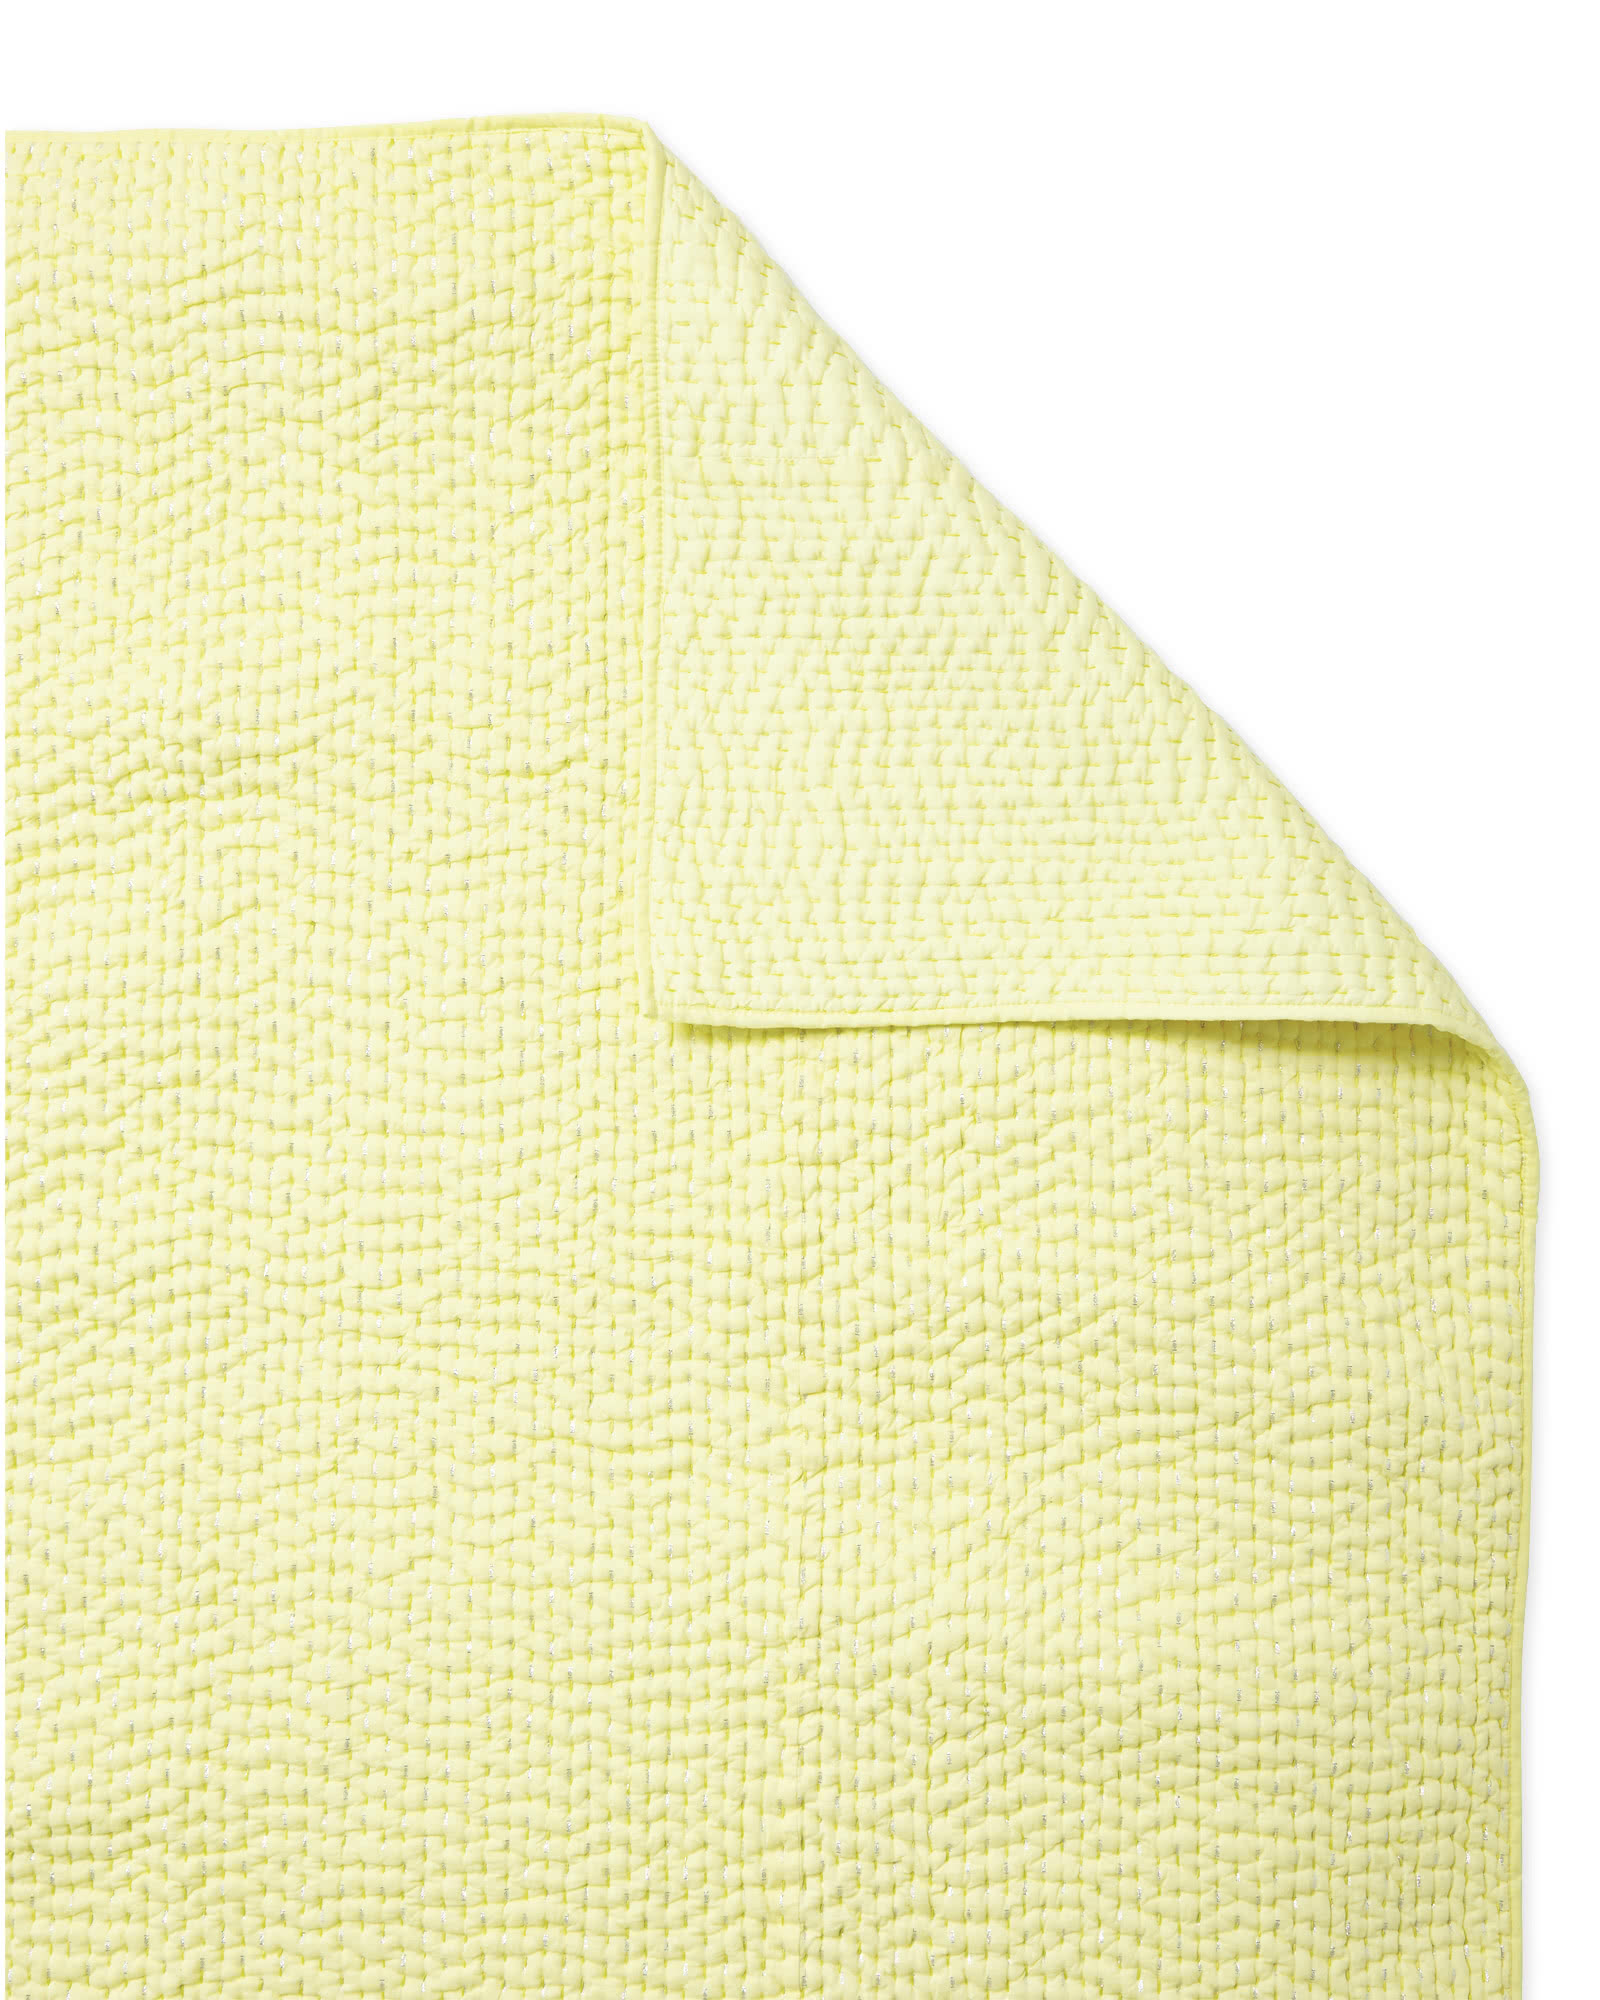 Metallic Pickstitch Quilt - Yellow,